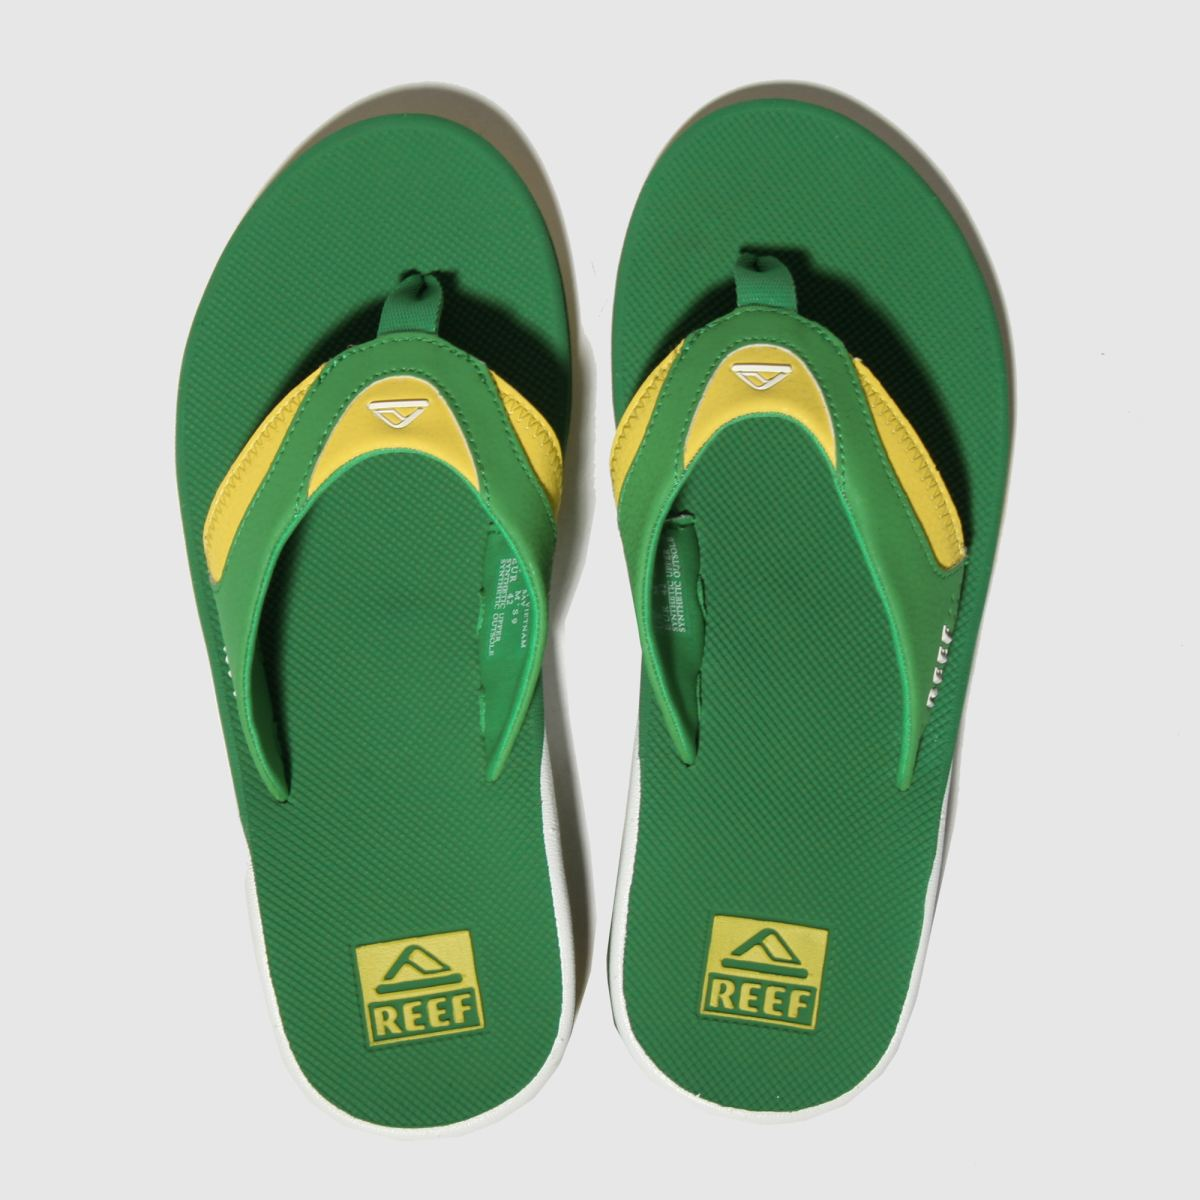 Reef Green Fanning Sandals